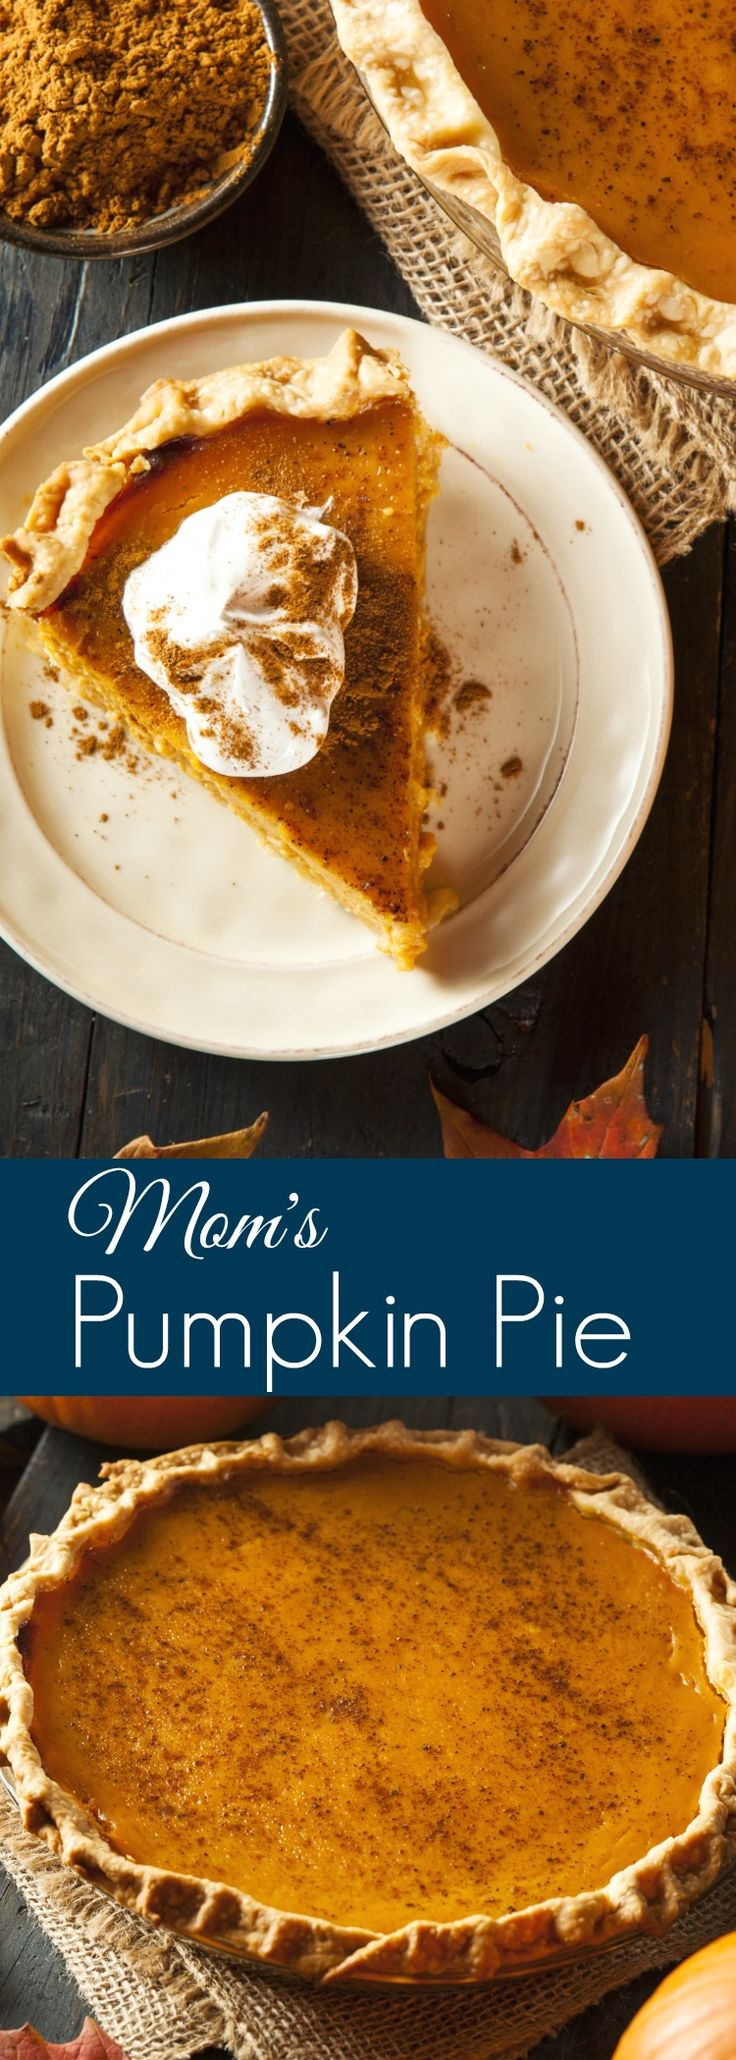 Family celebrations just wouldn't be complete without a pumpkin pie. This classic dessert is the star of many family celebrations like Thanksgiving, Christmas and Easter. Just the thought of the heady aroma of spice and sweetness that fill our homes at that time makes me really want a slice of that pie!